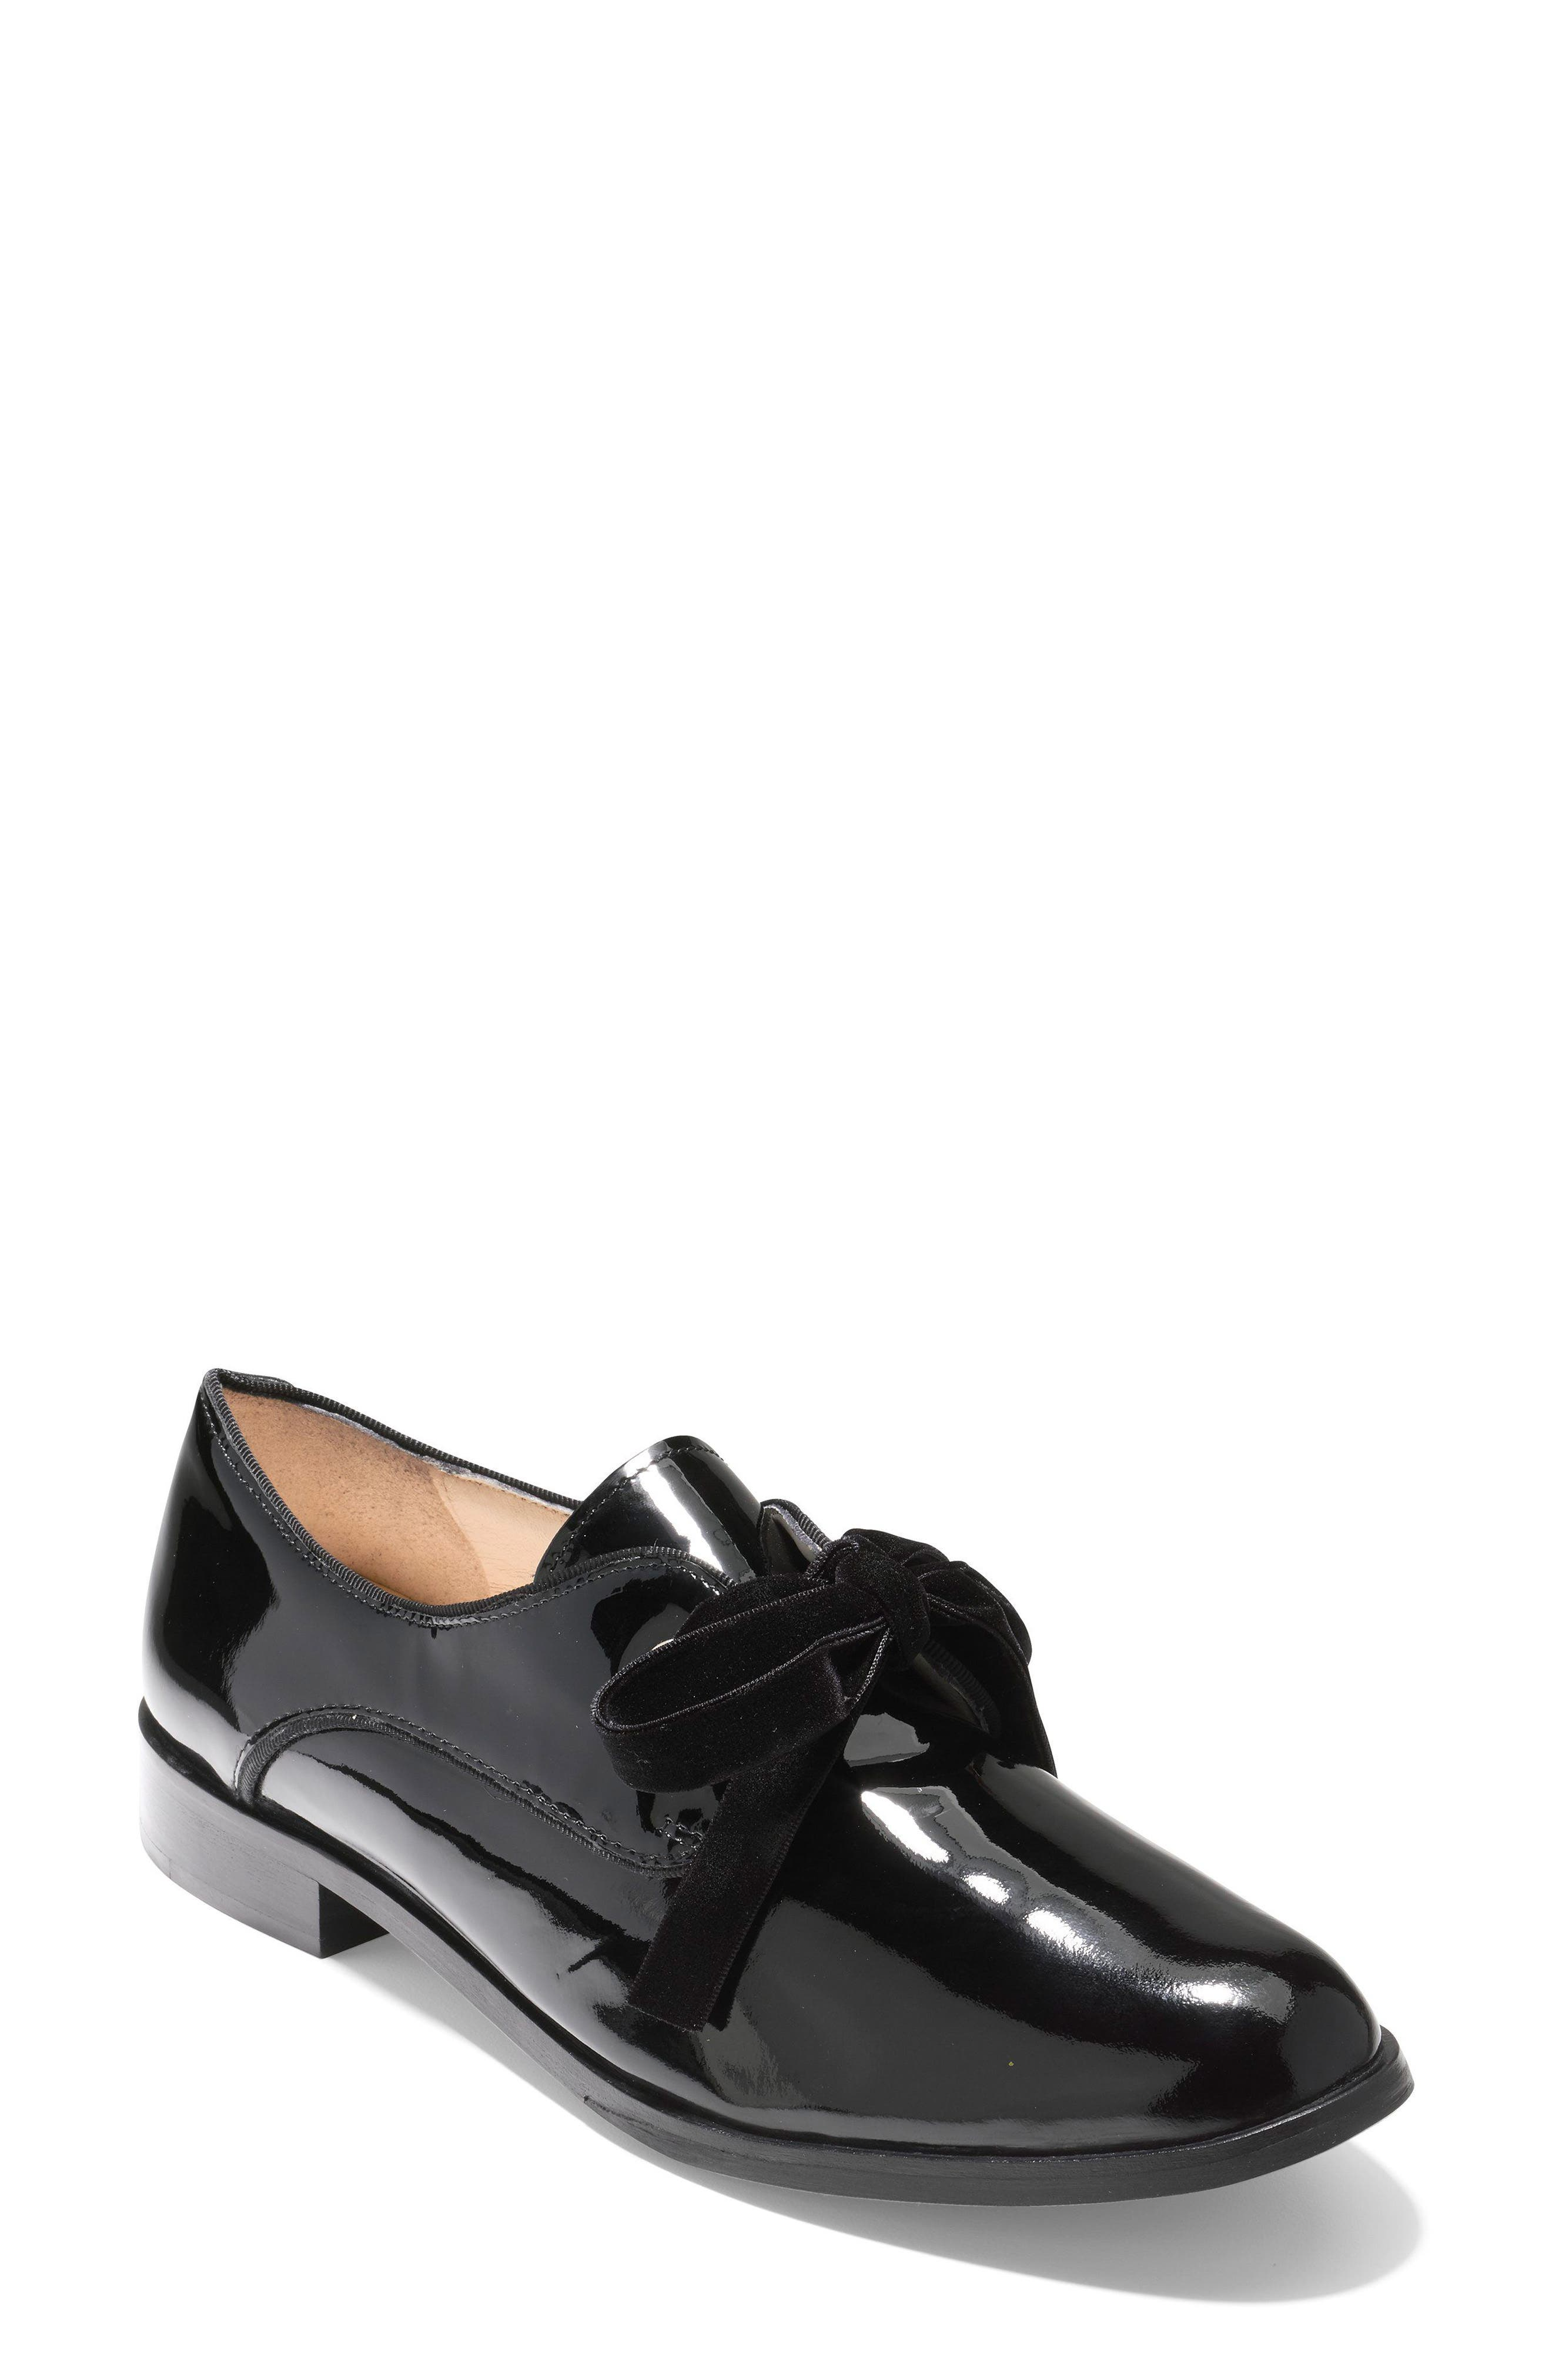 Jaylyn Oxford,                             Main thumbnail 1, color,                             Black Patent